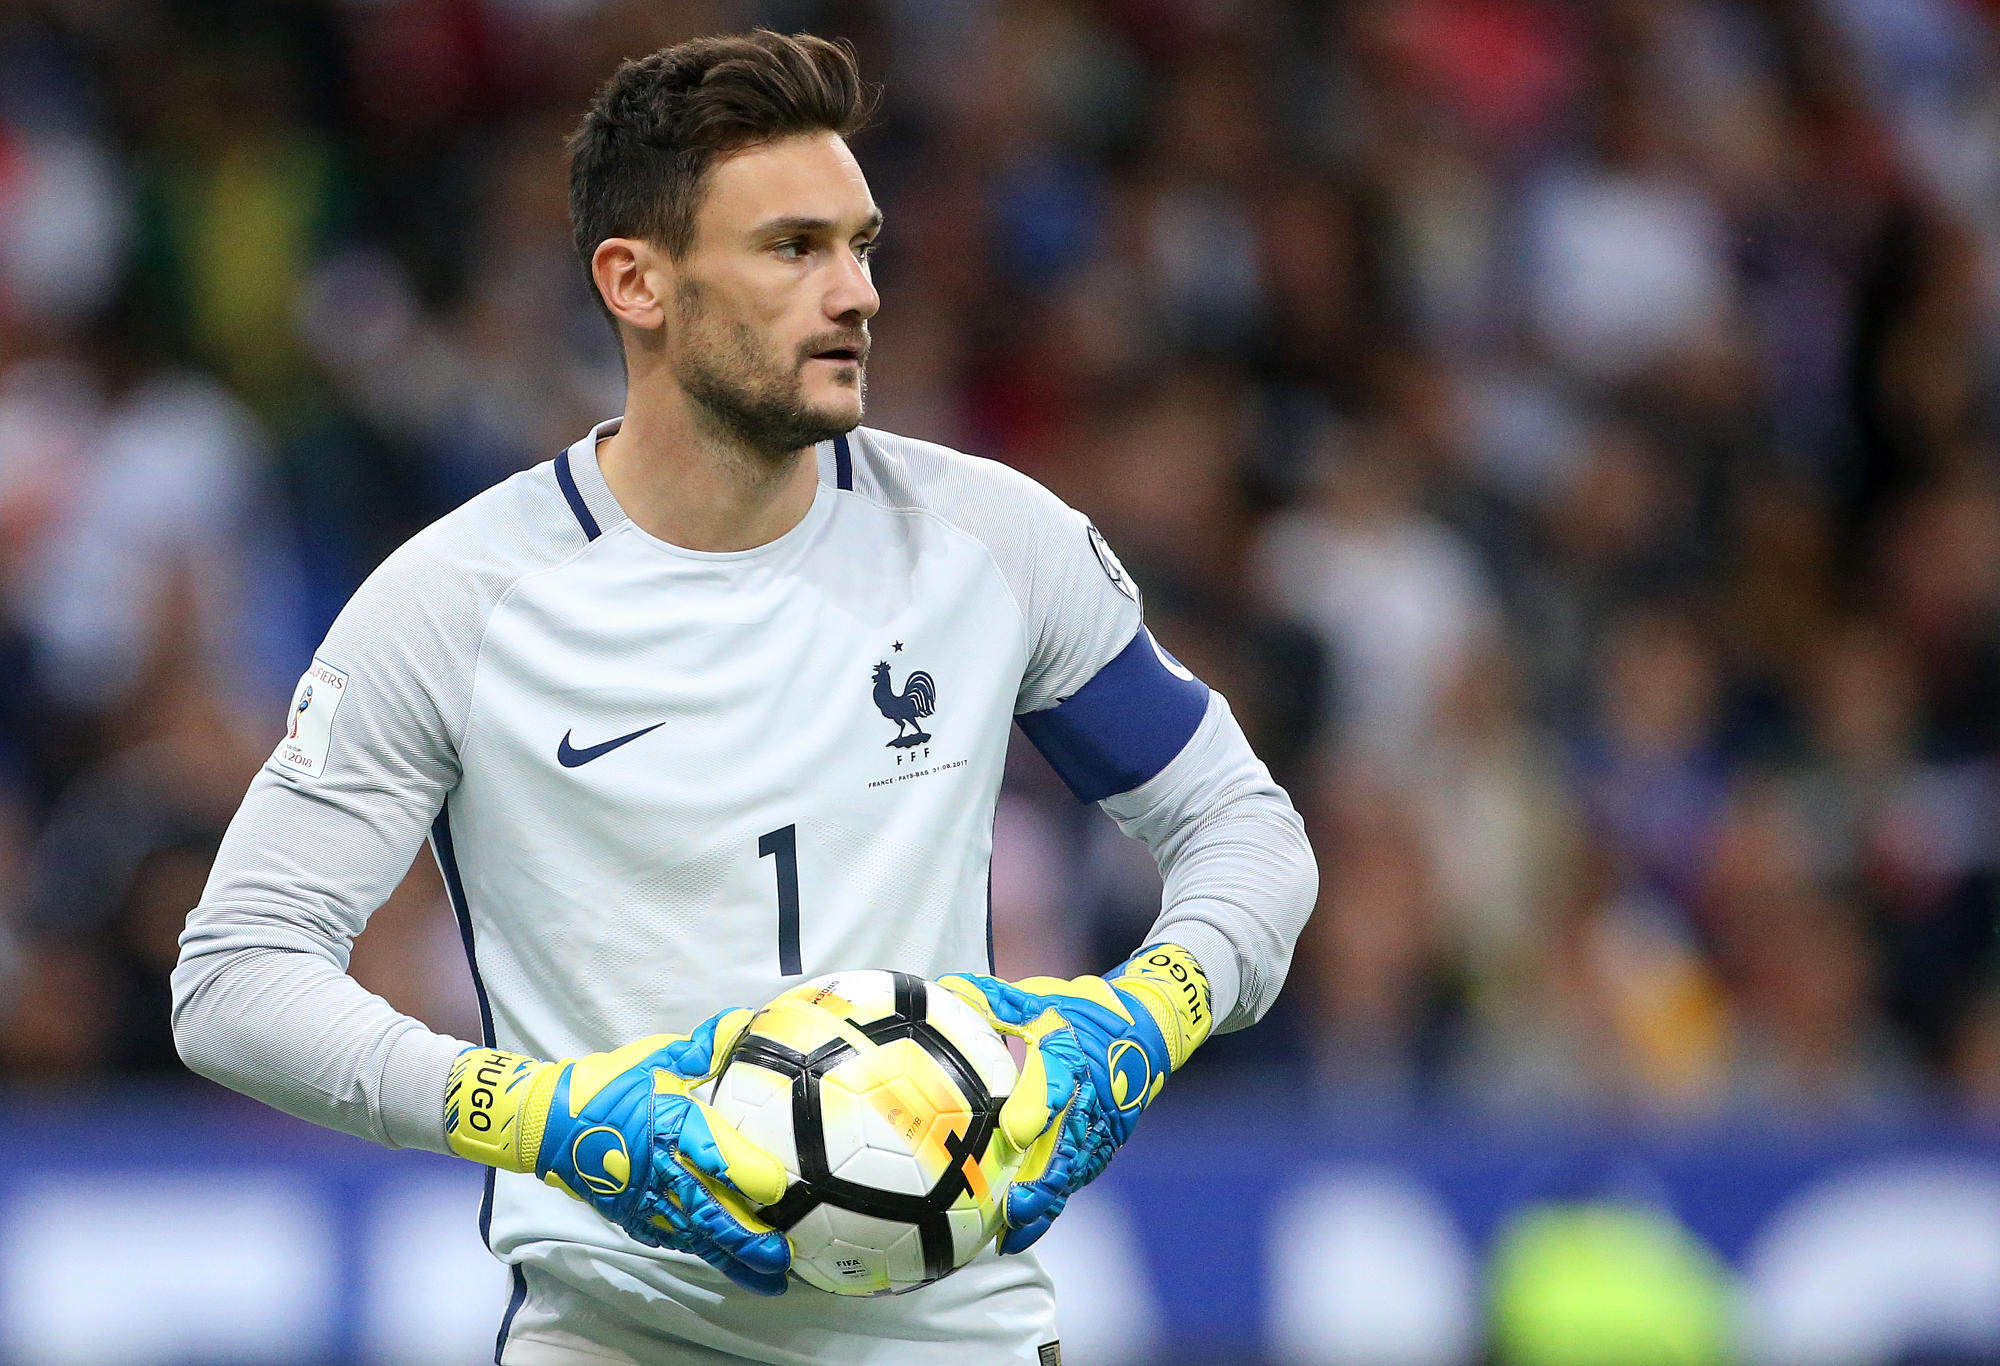 France's goalkeeper Hugo Lloris looks on.